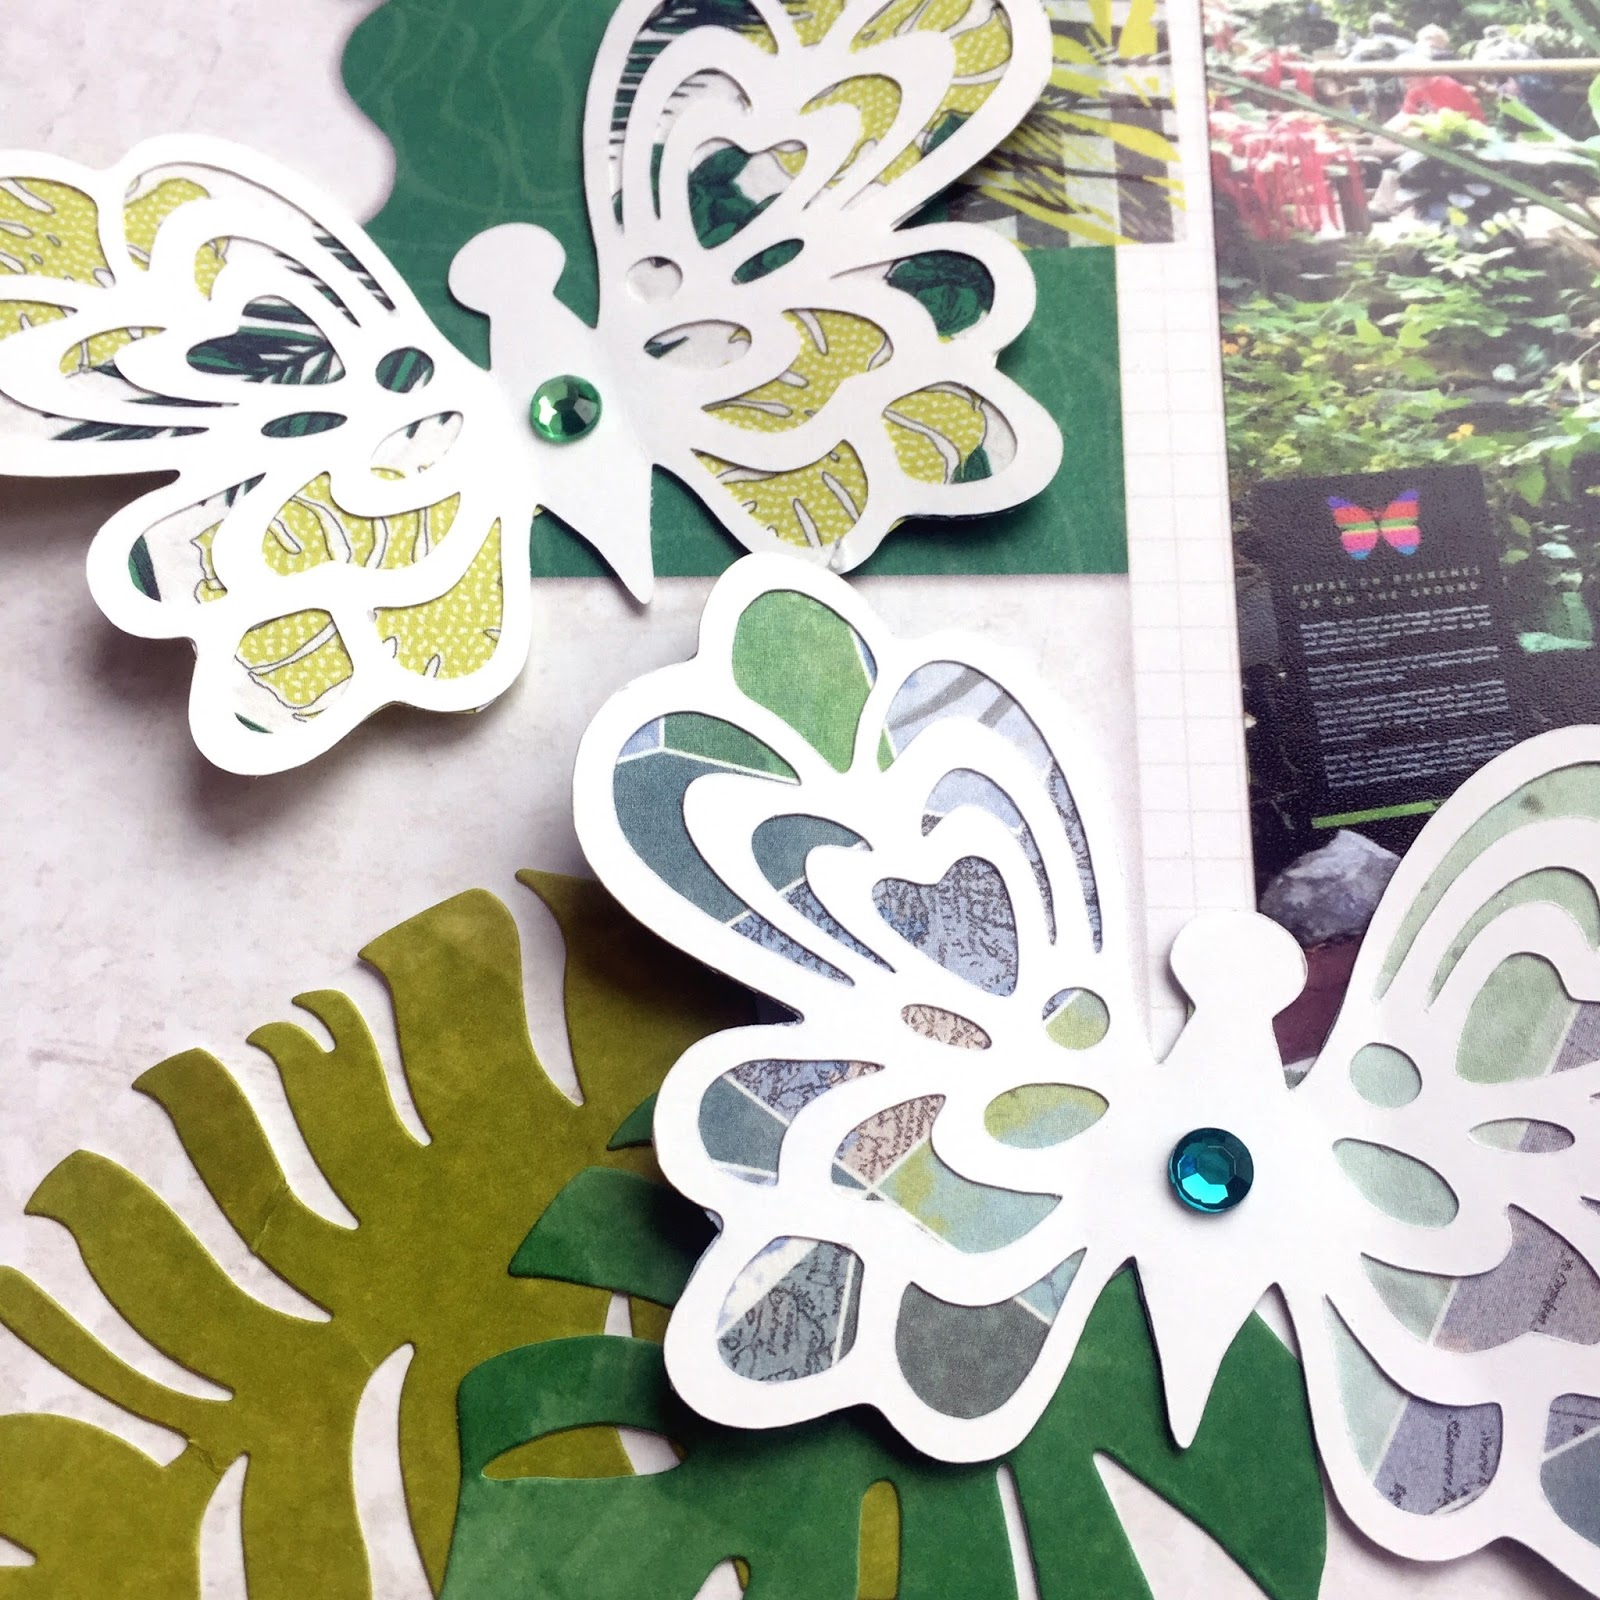 How to make scrapbook in facebook - You Can Get All The Details On Our Cls Facebook Page Or Check Out The Instructional Video On My Youtube Channel To See How I Created The Custom Butterfly